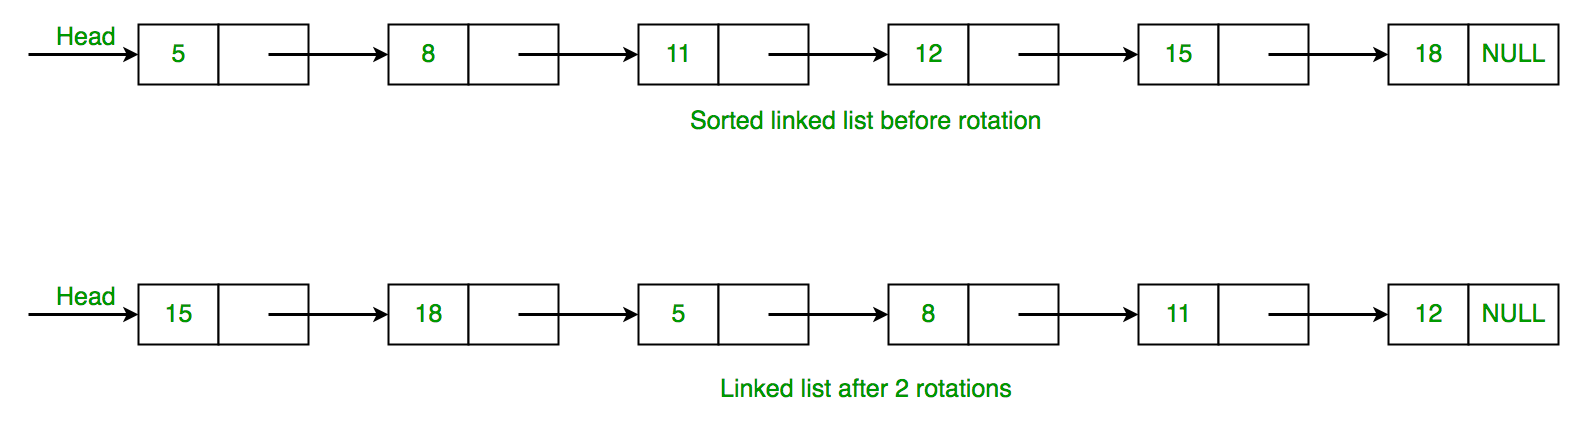 Count rotations in sorted and rotated linked list